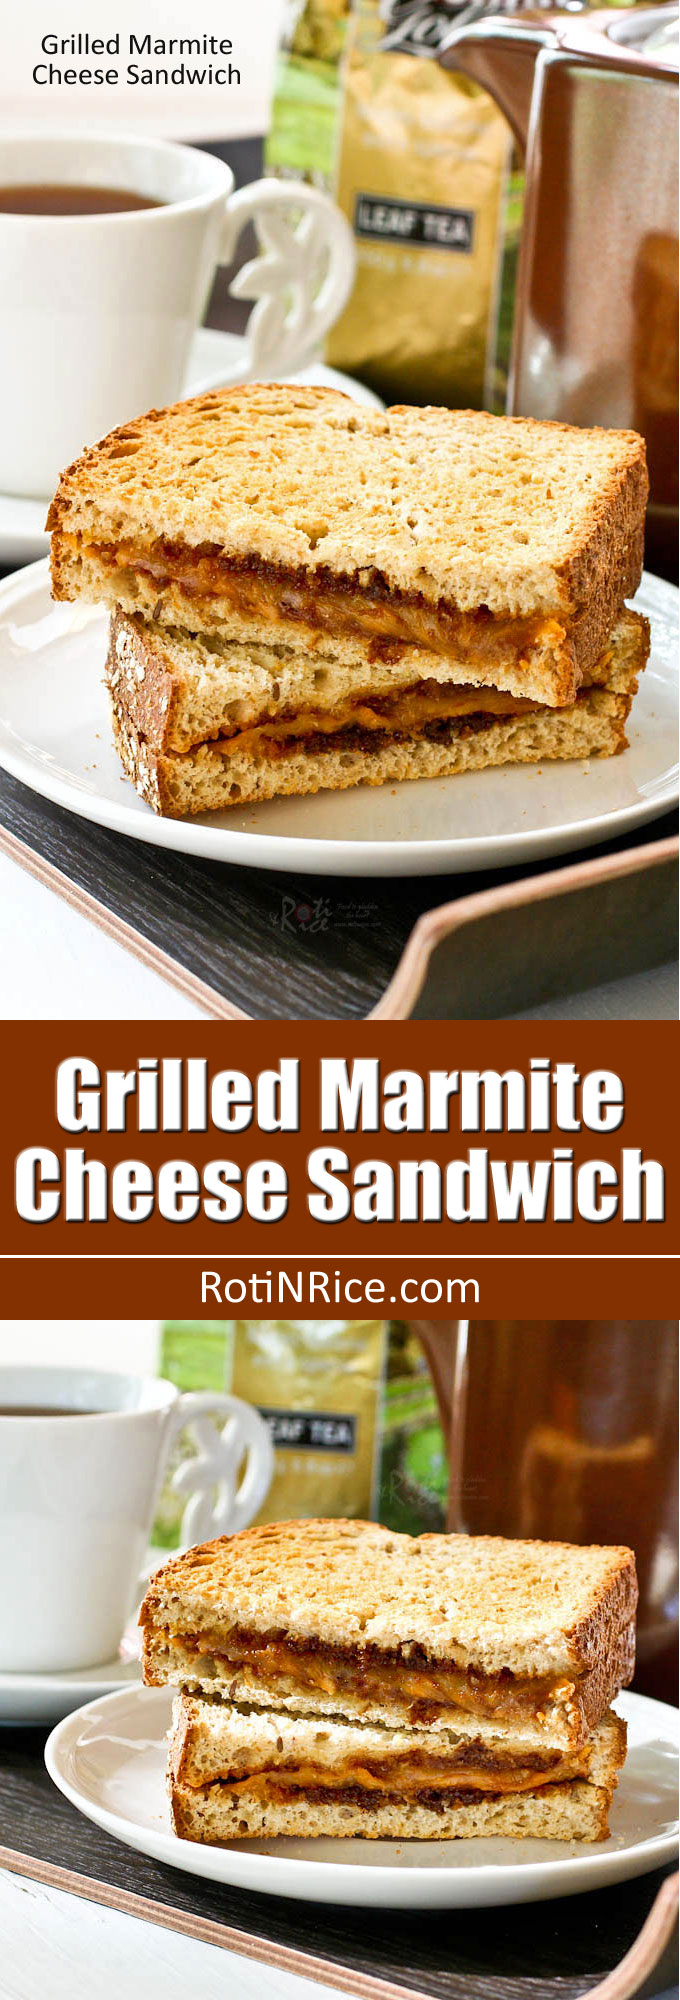 Rich savory Grilled Marmite Cheese Sandwich with lots of umami flavor. Makes a quick and satisfying breakfast or snack served with your favorite cup of tea. | RotiNRice.com